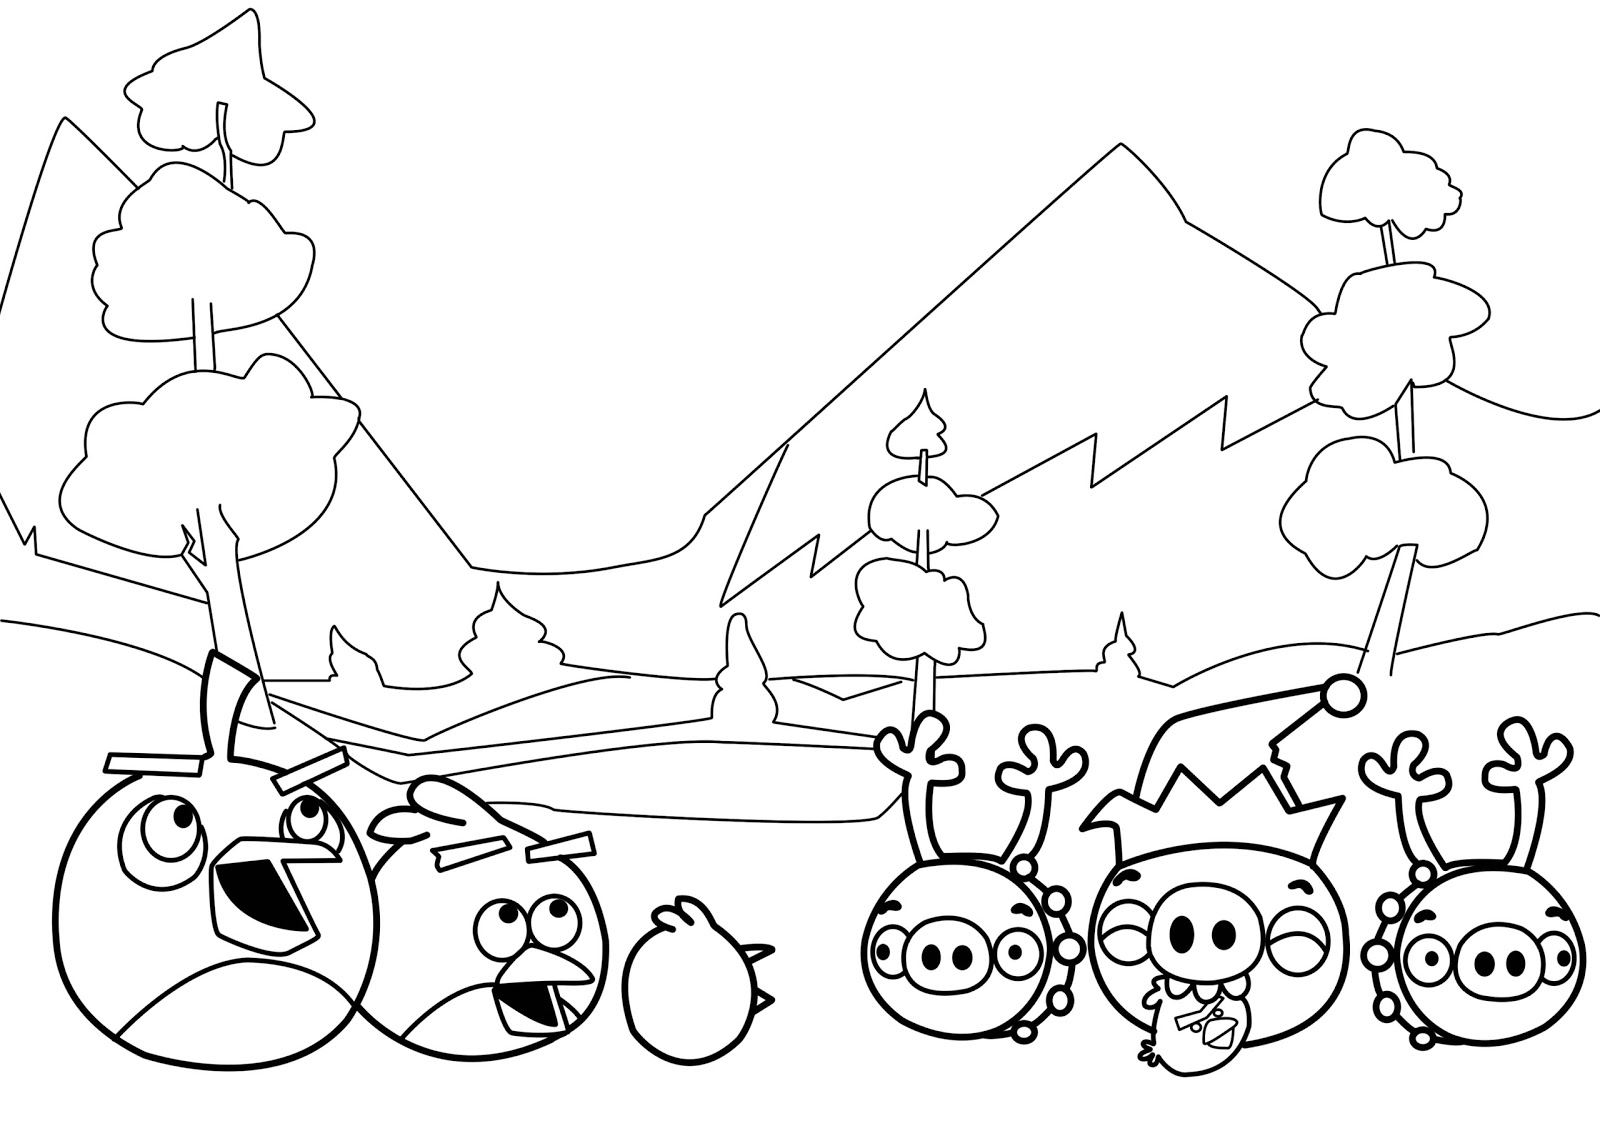 Free angry birds coloring pages for kids ~ New Angry Birds Coloring Pages | All Free Coloring Page ...